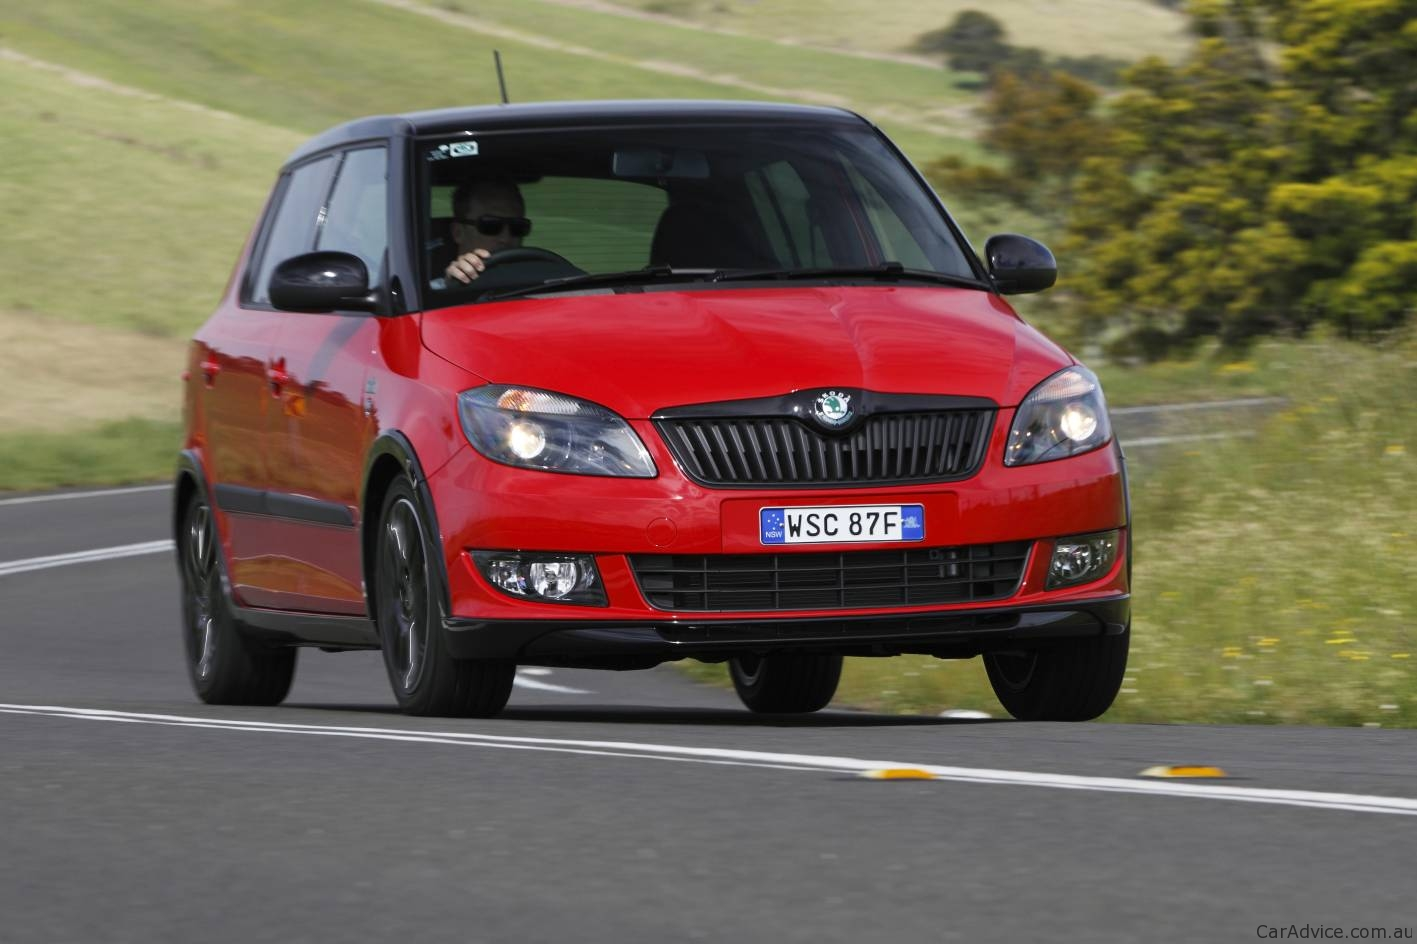 skoda fabia monte carlo 2012 specifications specs and review. Black Bedroom Furniture Sets. Home Design Ideas